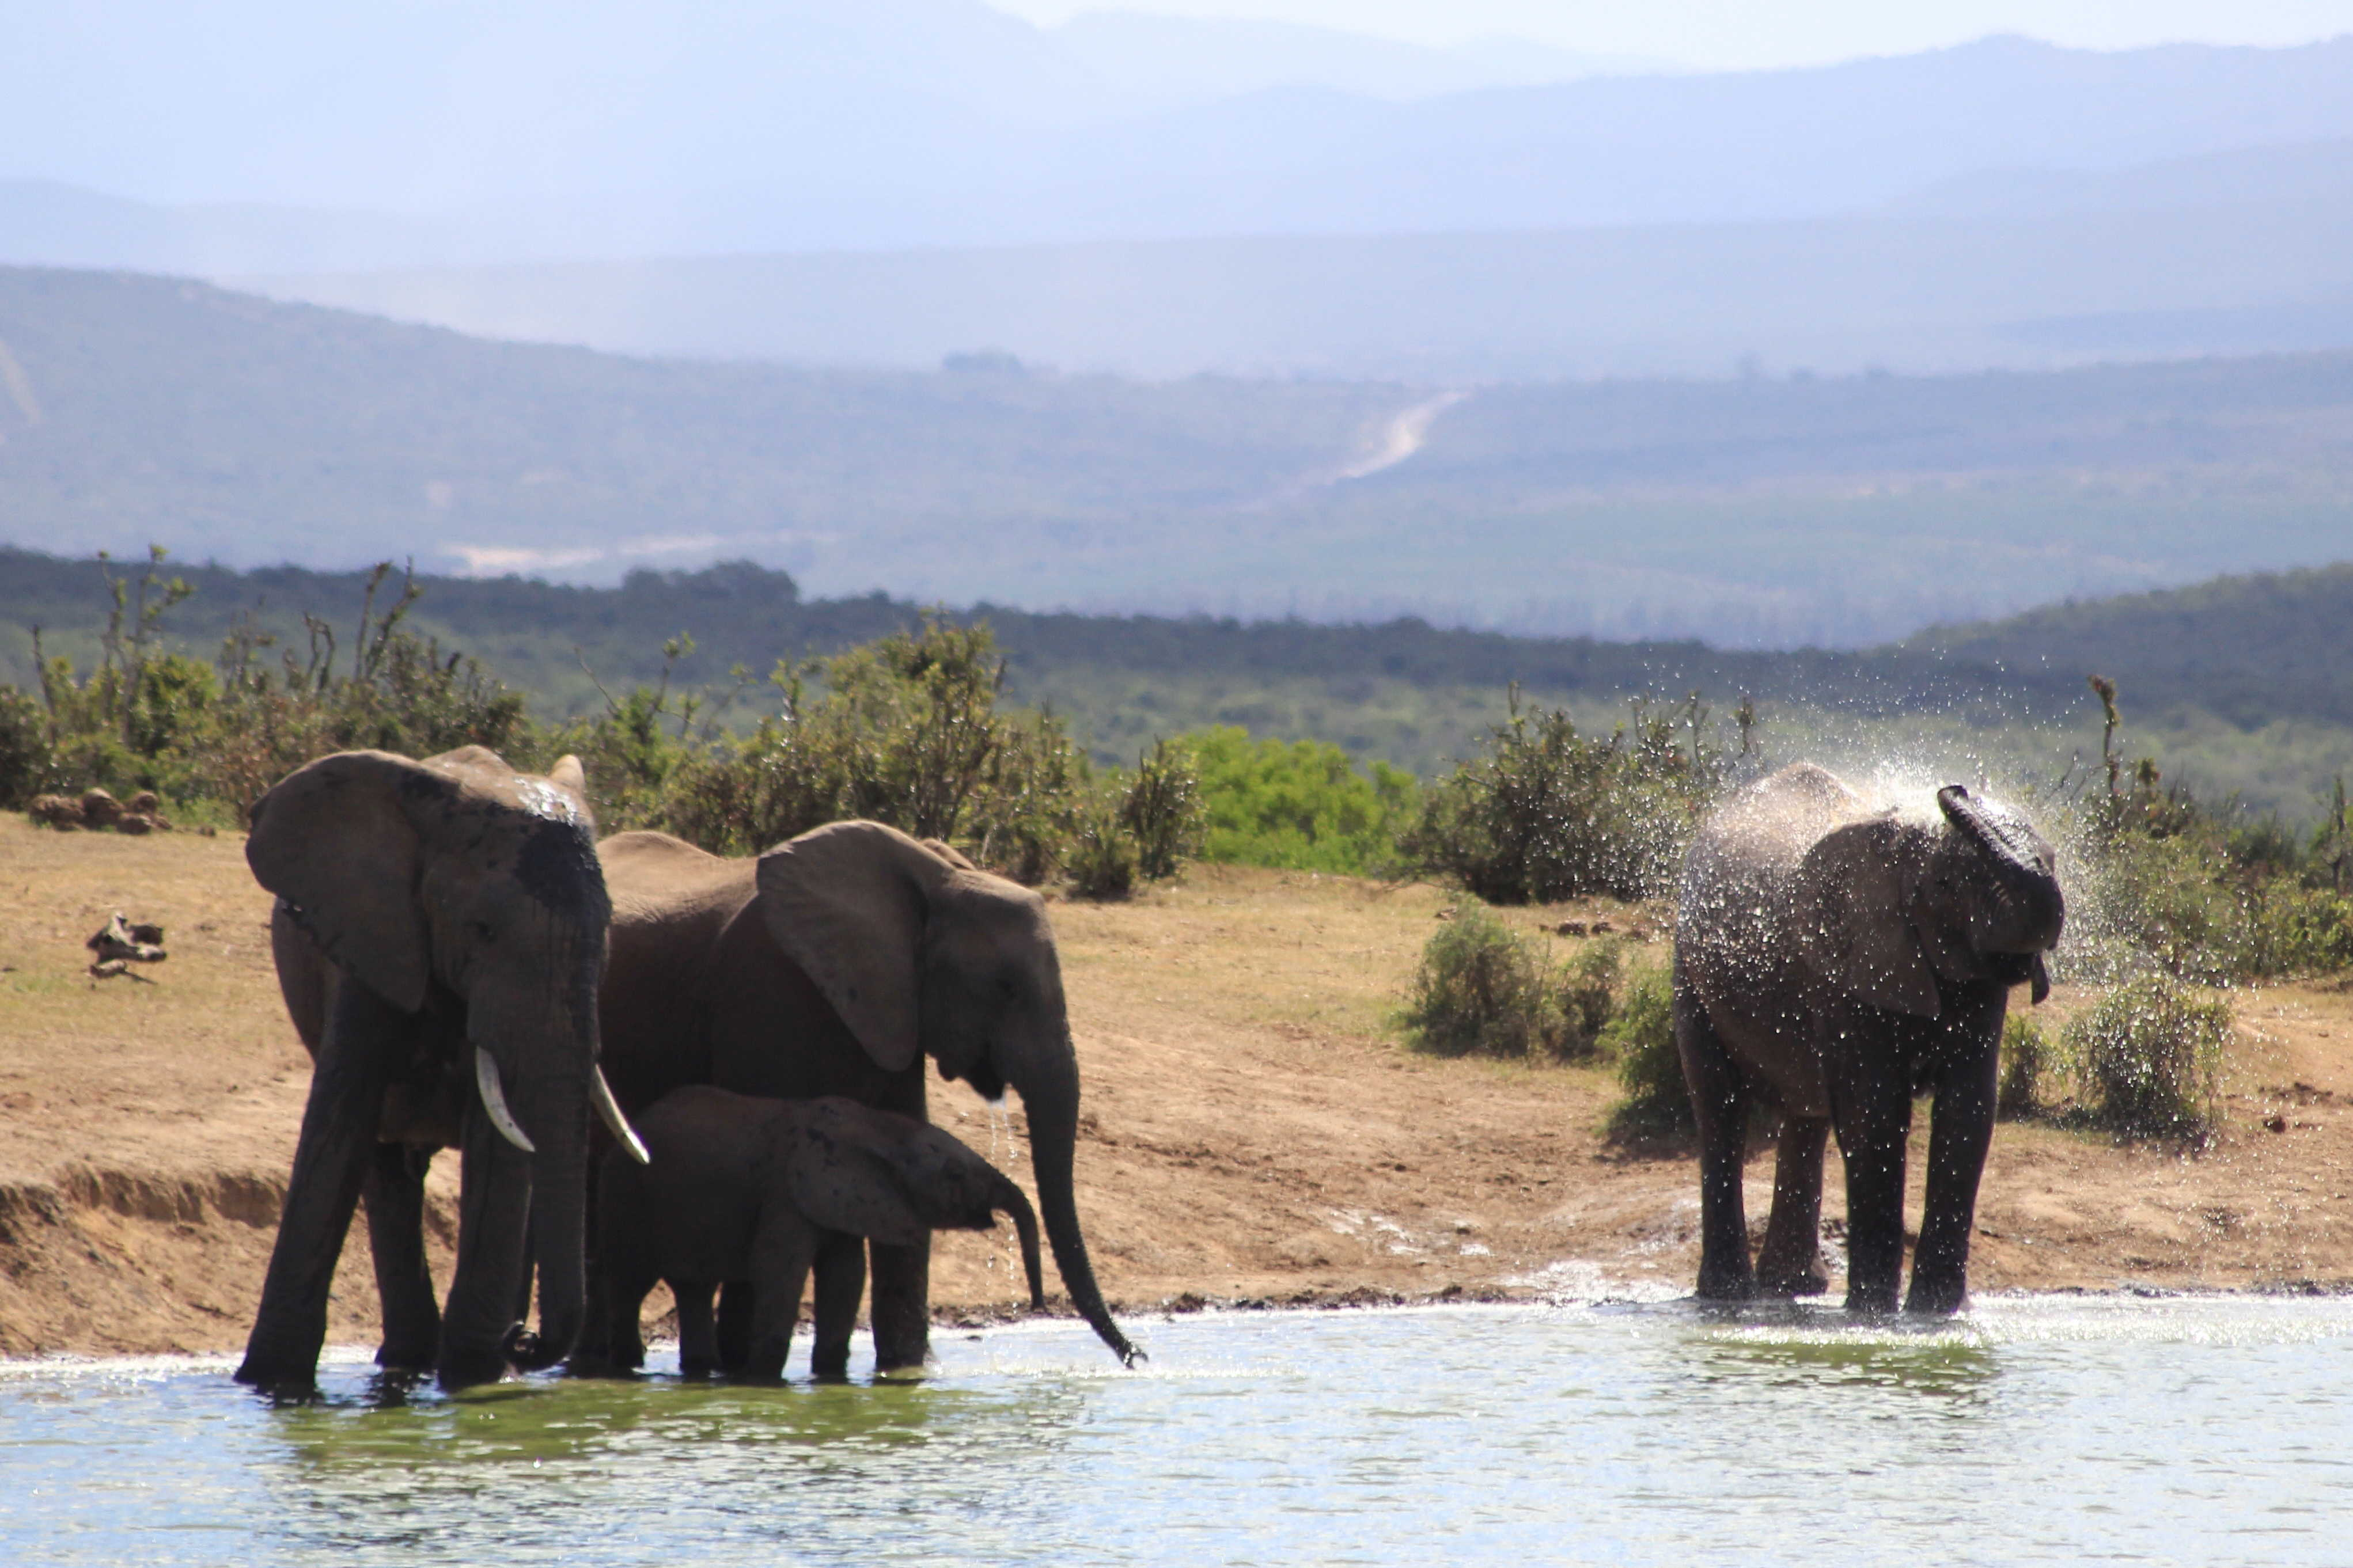 Elephants in Addo National Park, South Africa